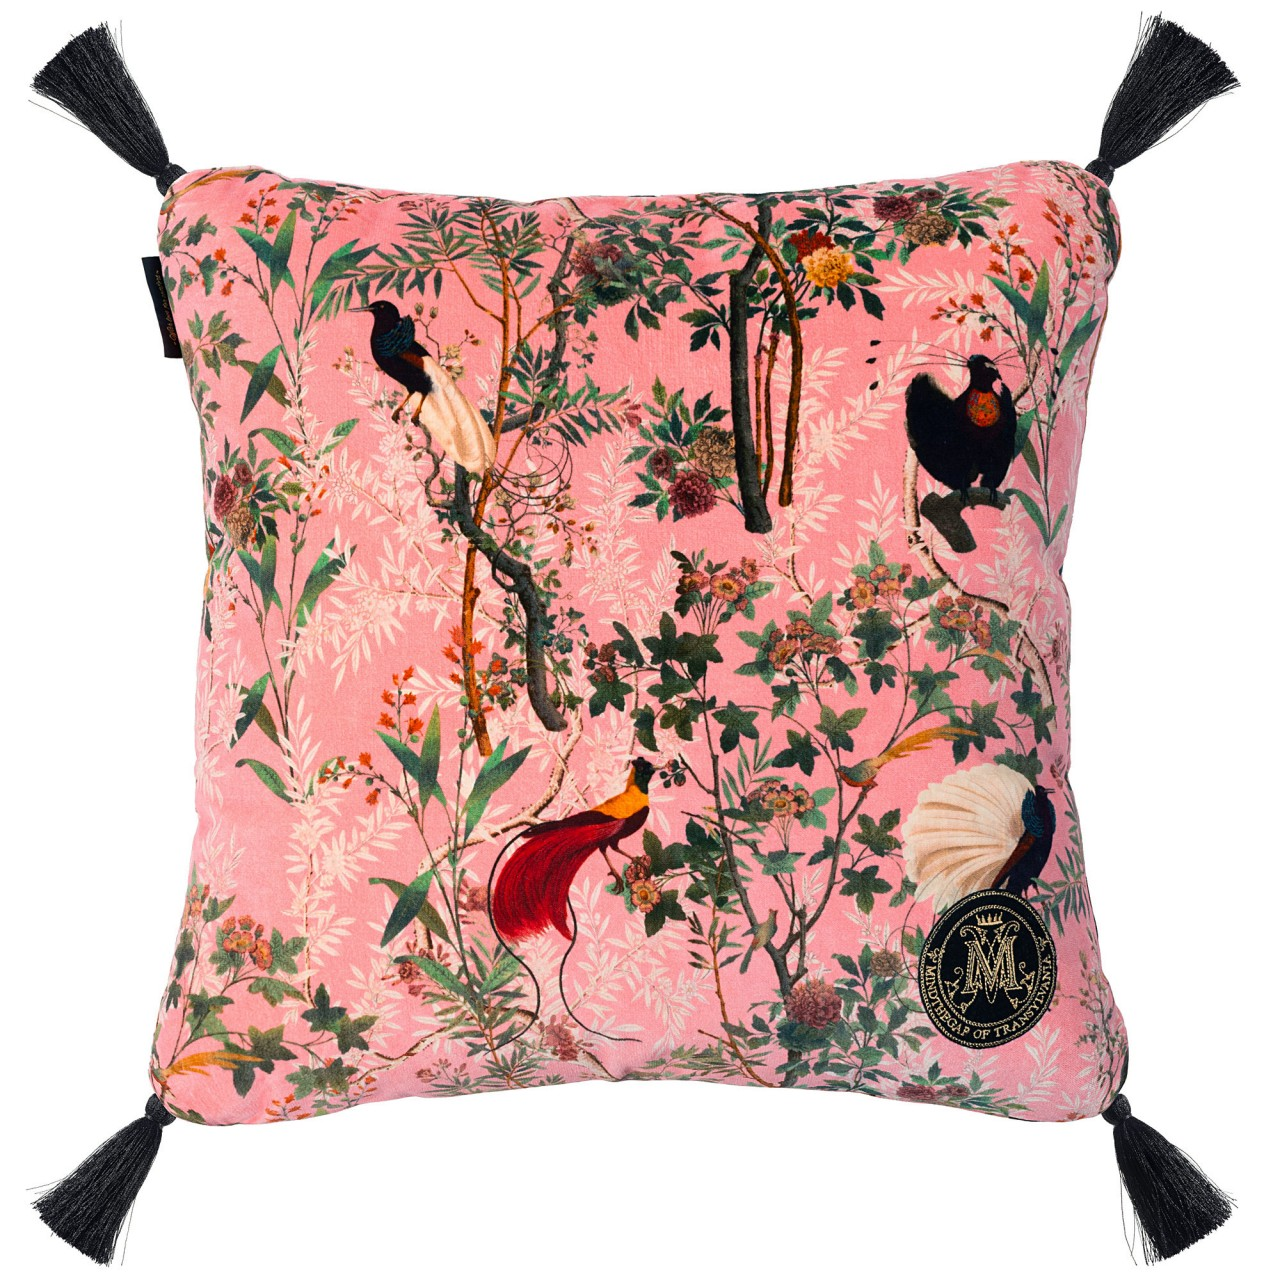 ROYAL GARDEN Pink Velvet Cushion